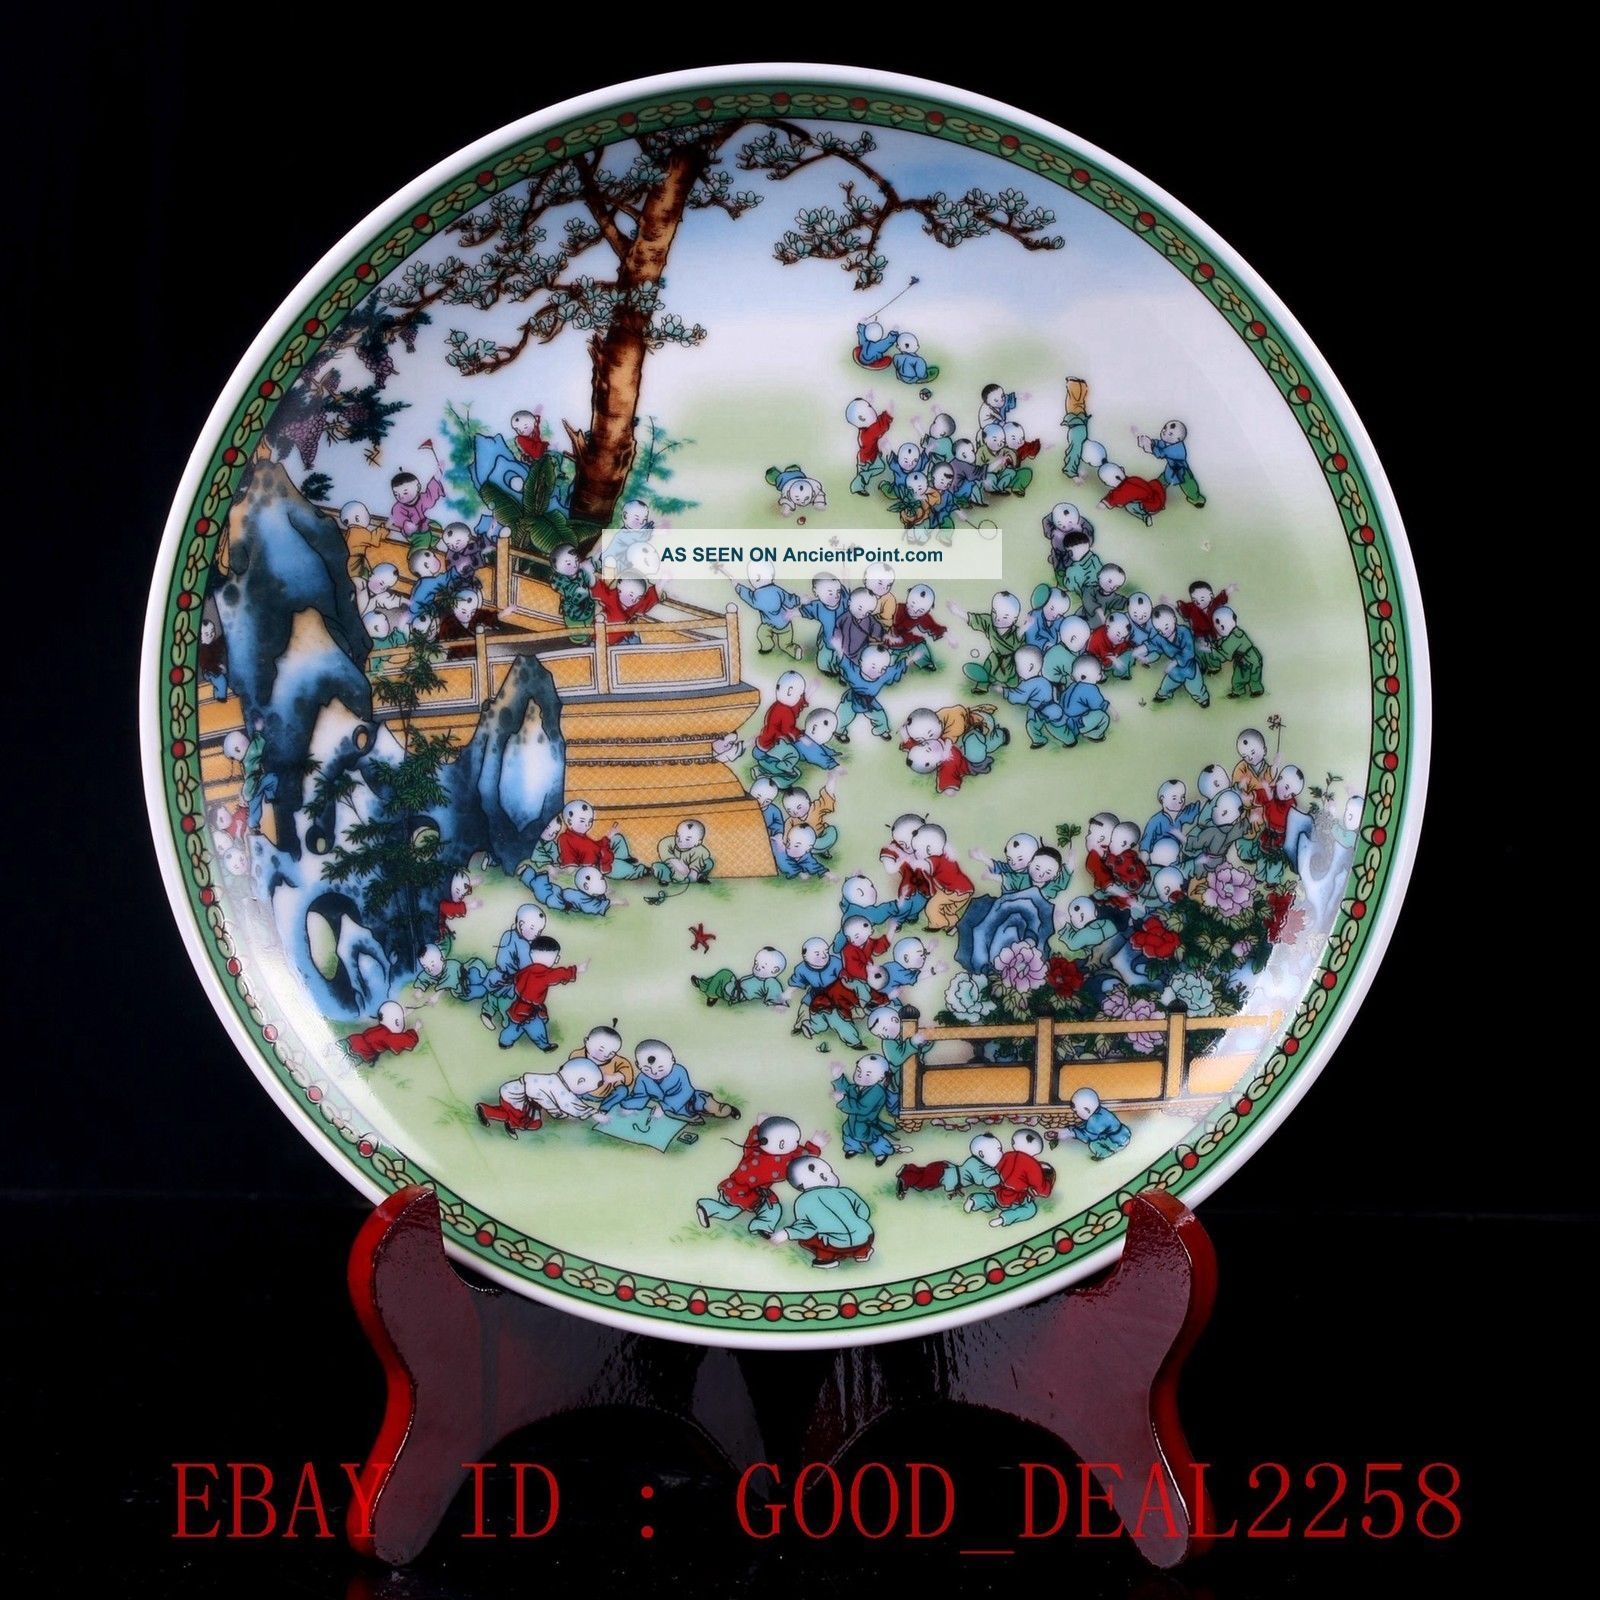 Chinese Porcelain Handmade One Hundred Kid Plate W Qianlong Mark Pz046 Plates photo